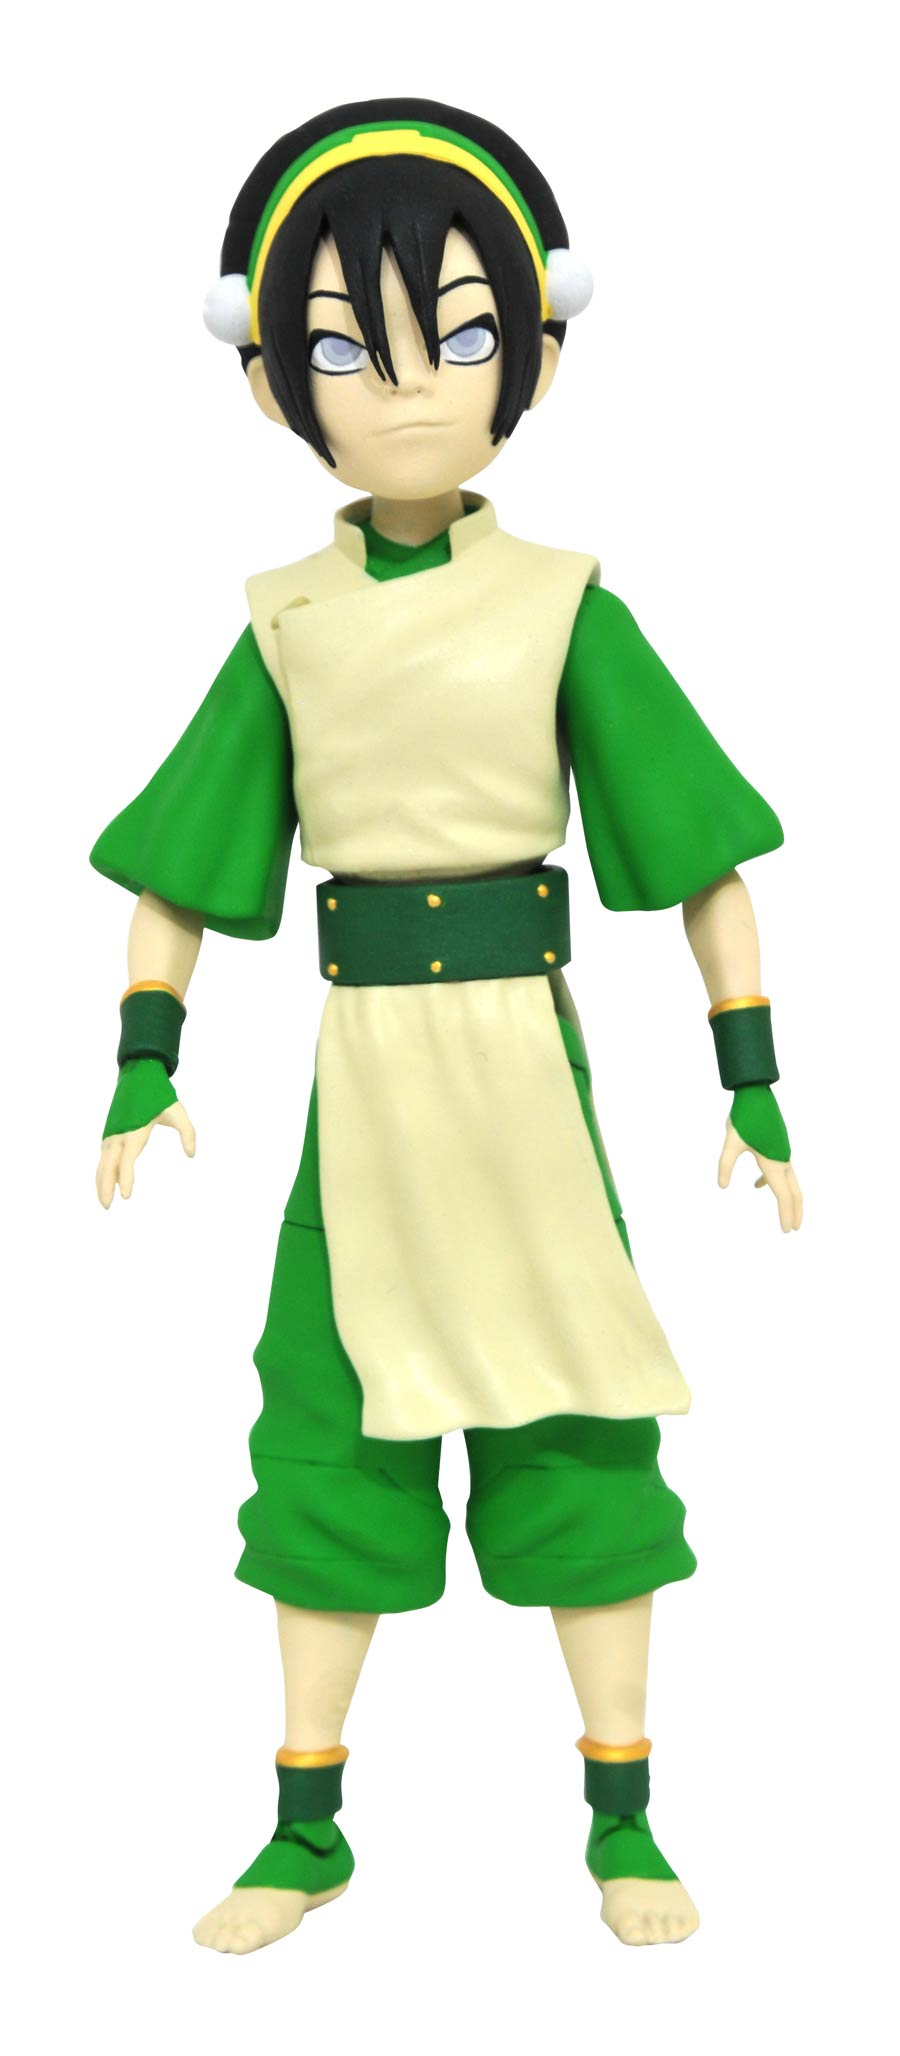 Avatar The Last Airbender Action Figure Series 3 - Toph Beifong